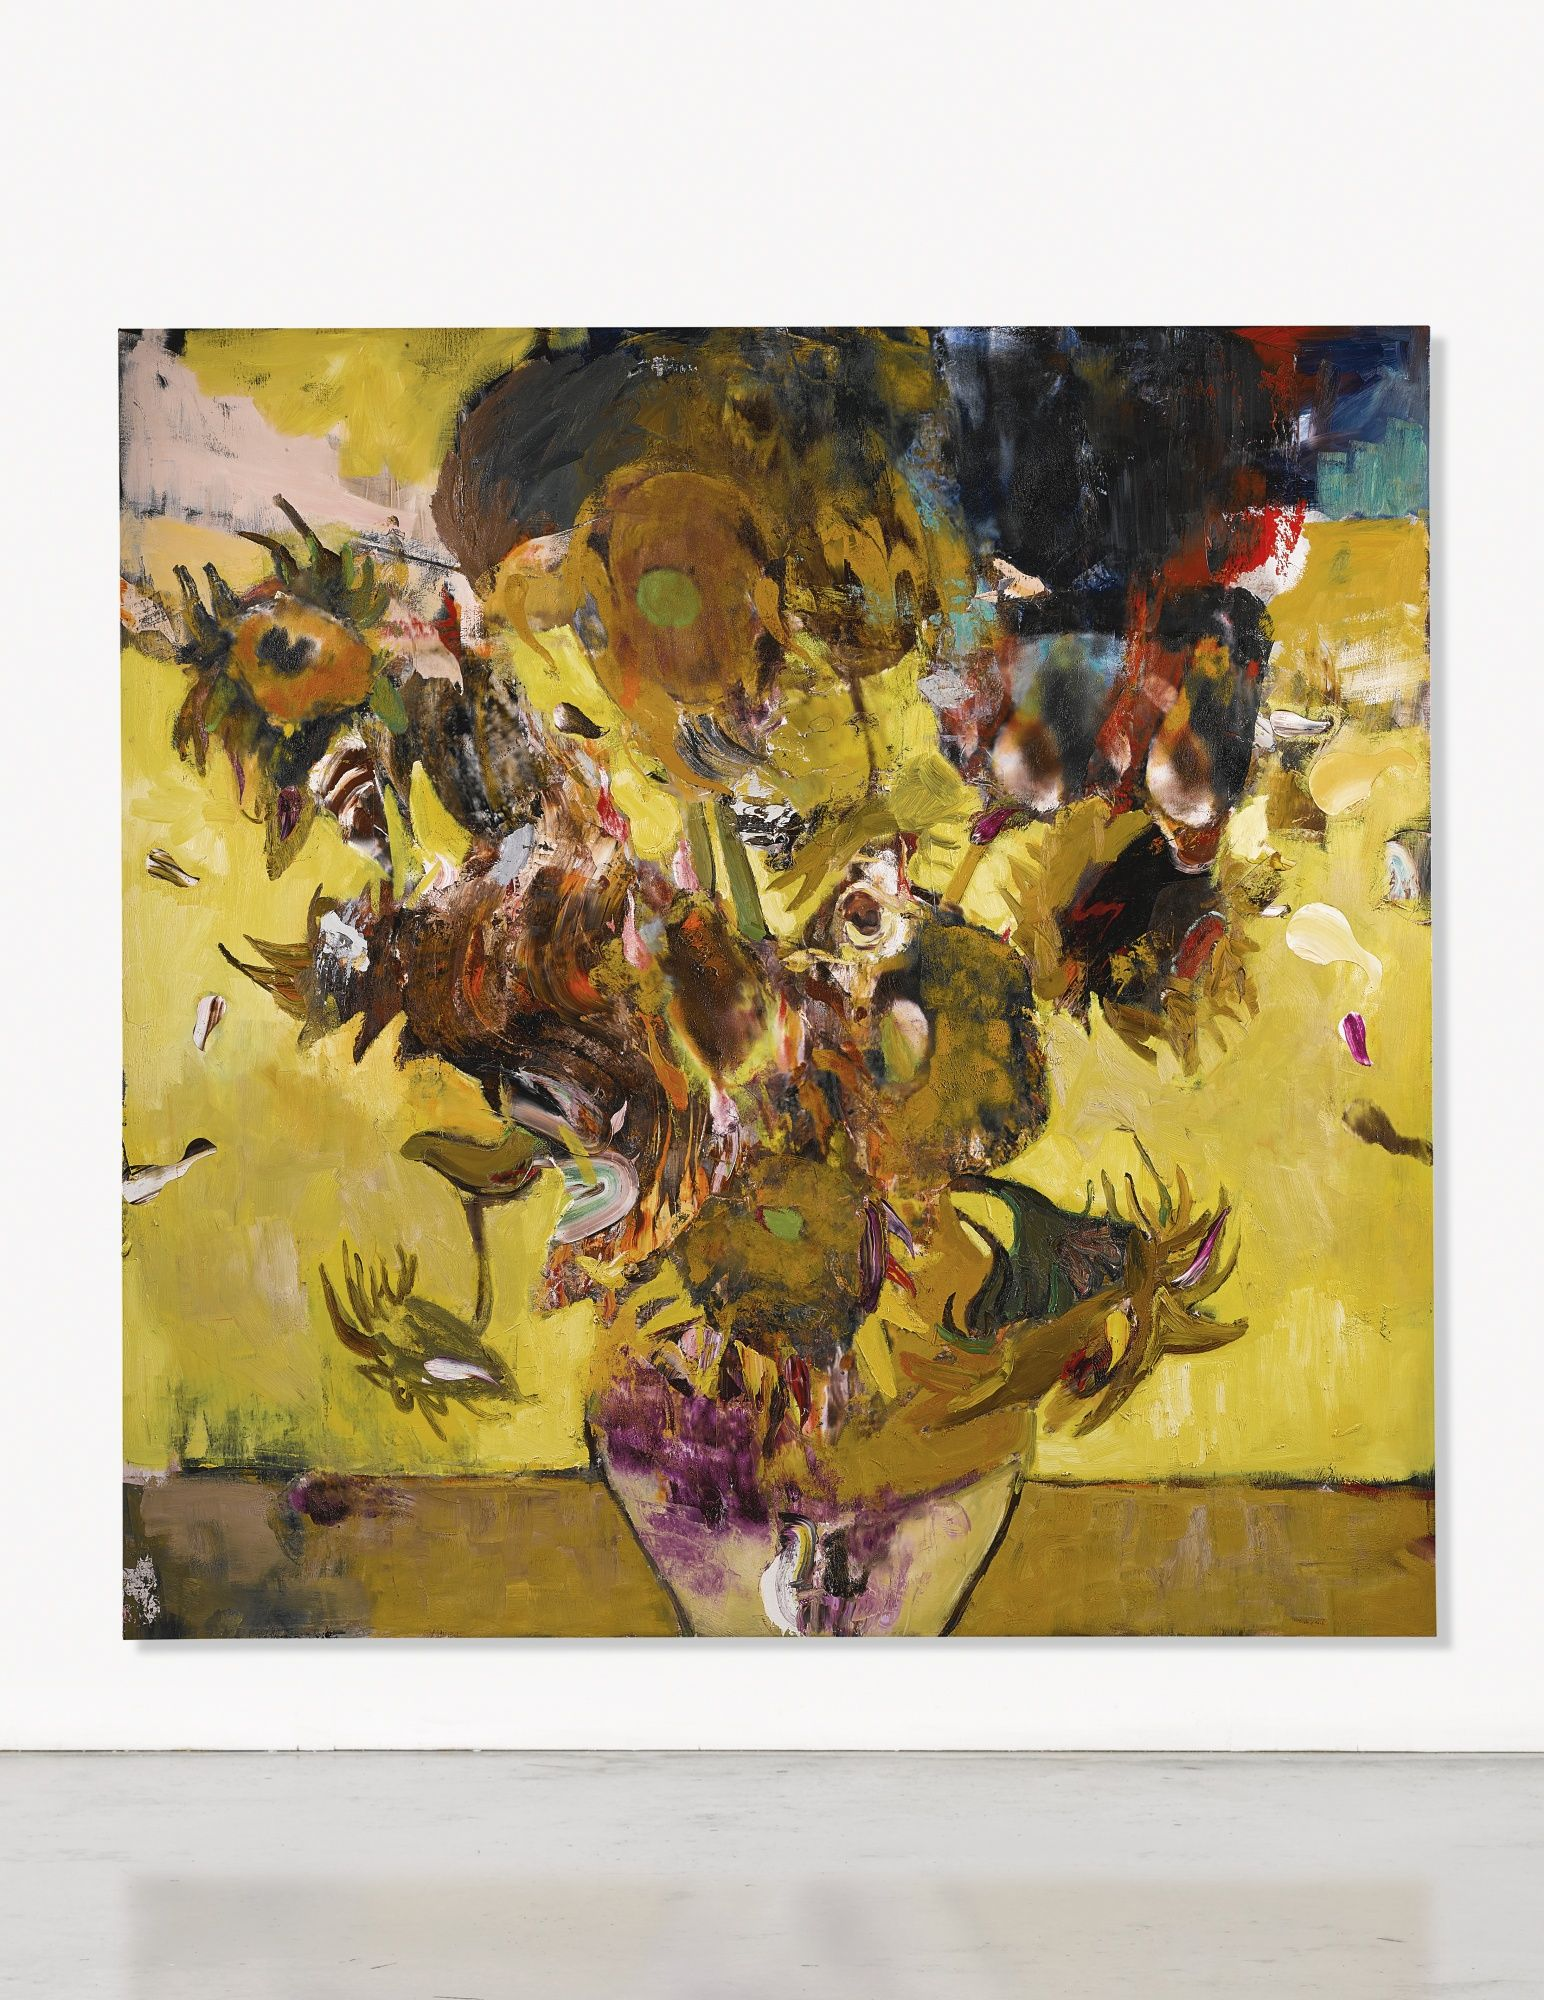 Adrian Ghenie B 1977 The Sunflowers In 1937 Signed And Dated 2017 On Reverse